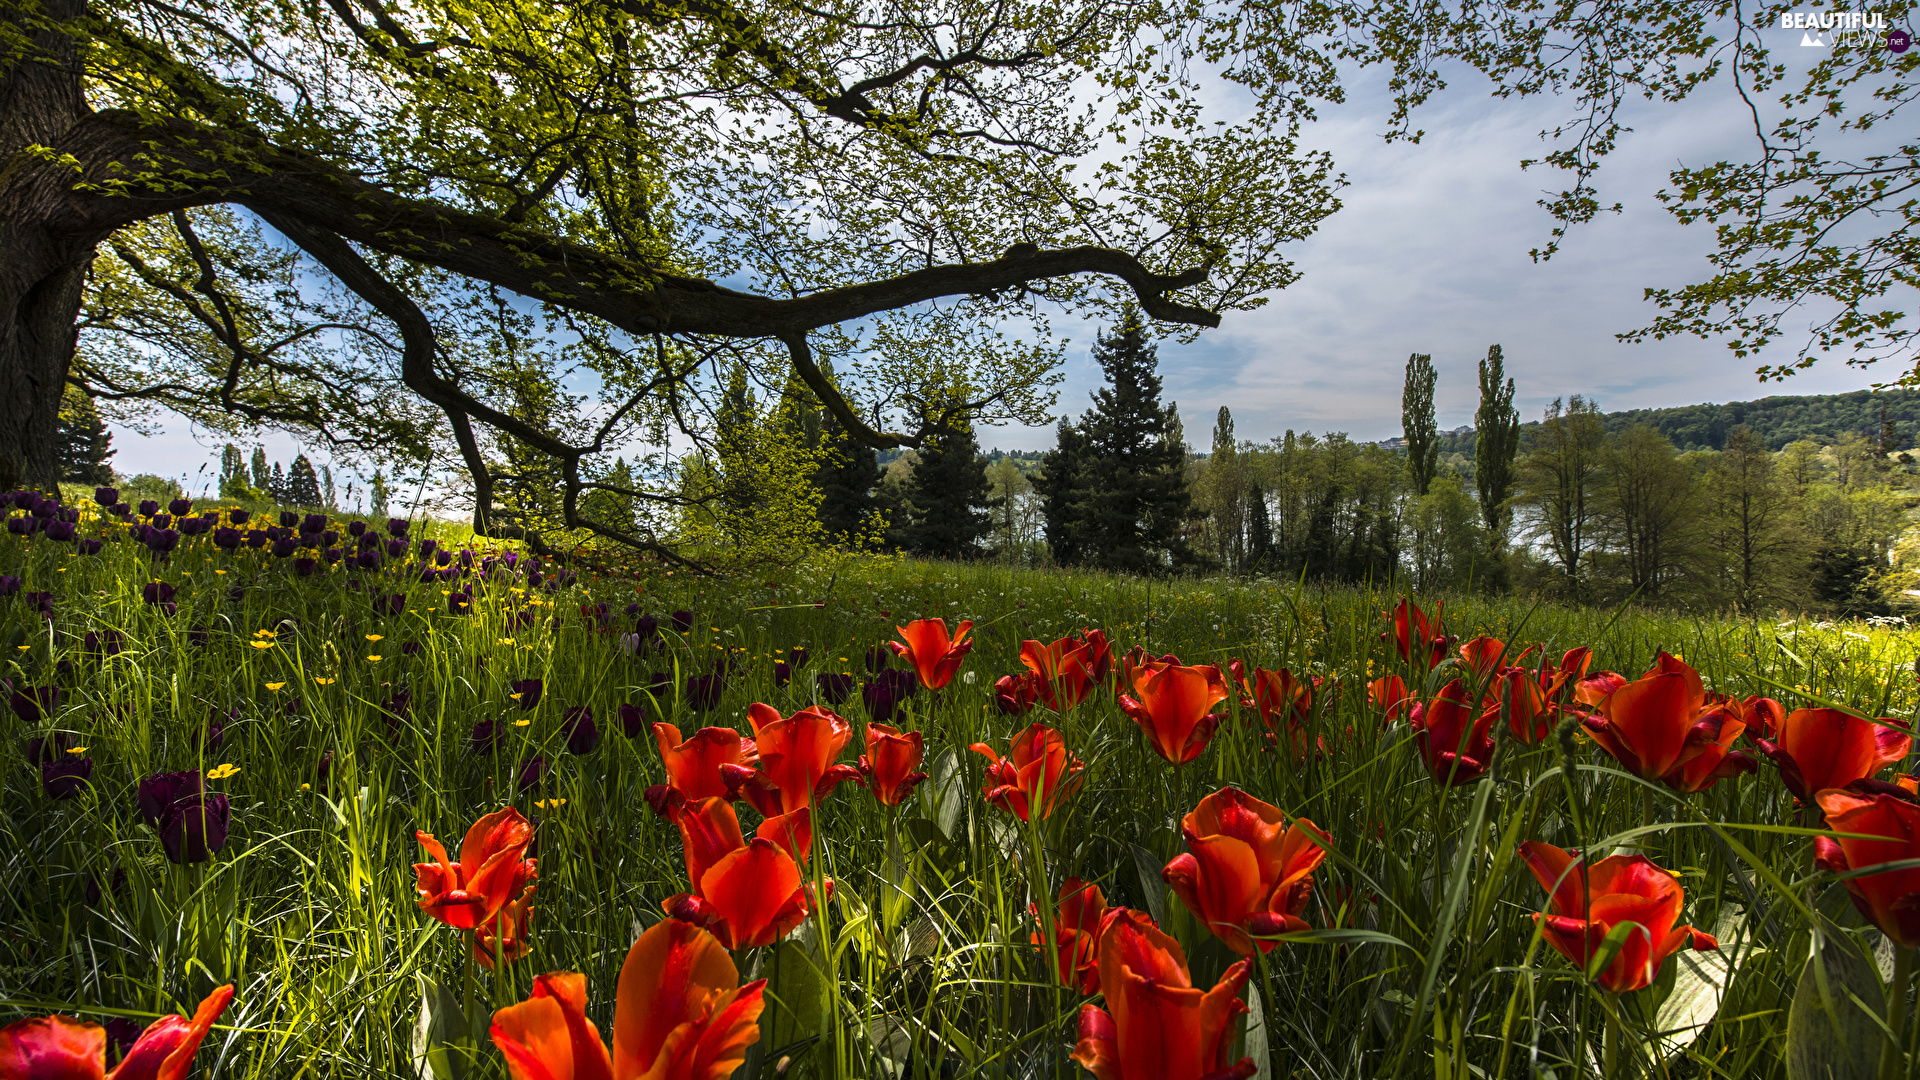 Tulips, Baden-W?rttemberg, Garden, trees, Park, Germany, Mainau Island, viewes, grass, Spring